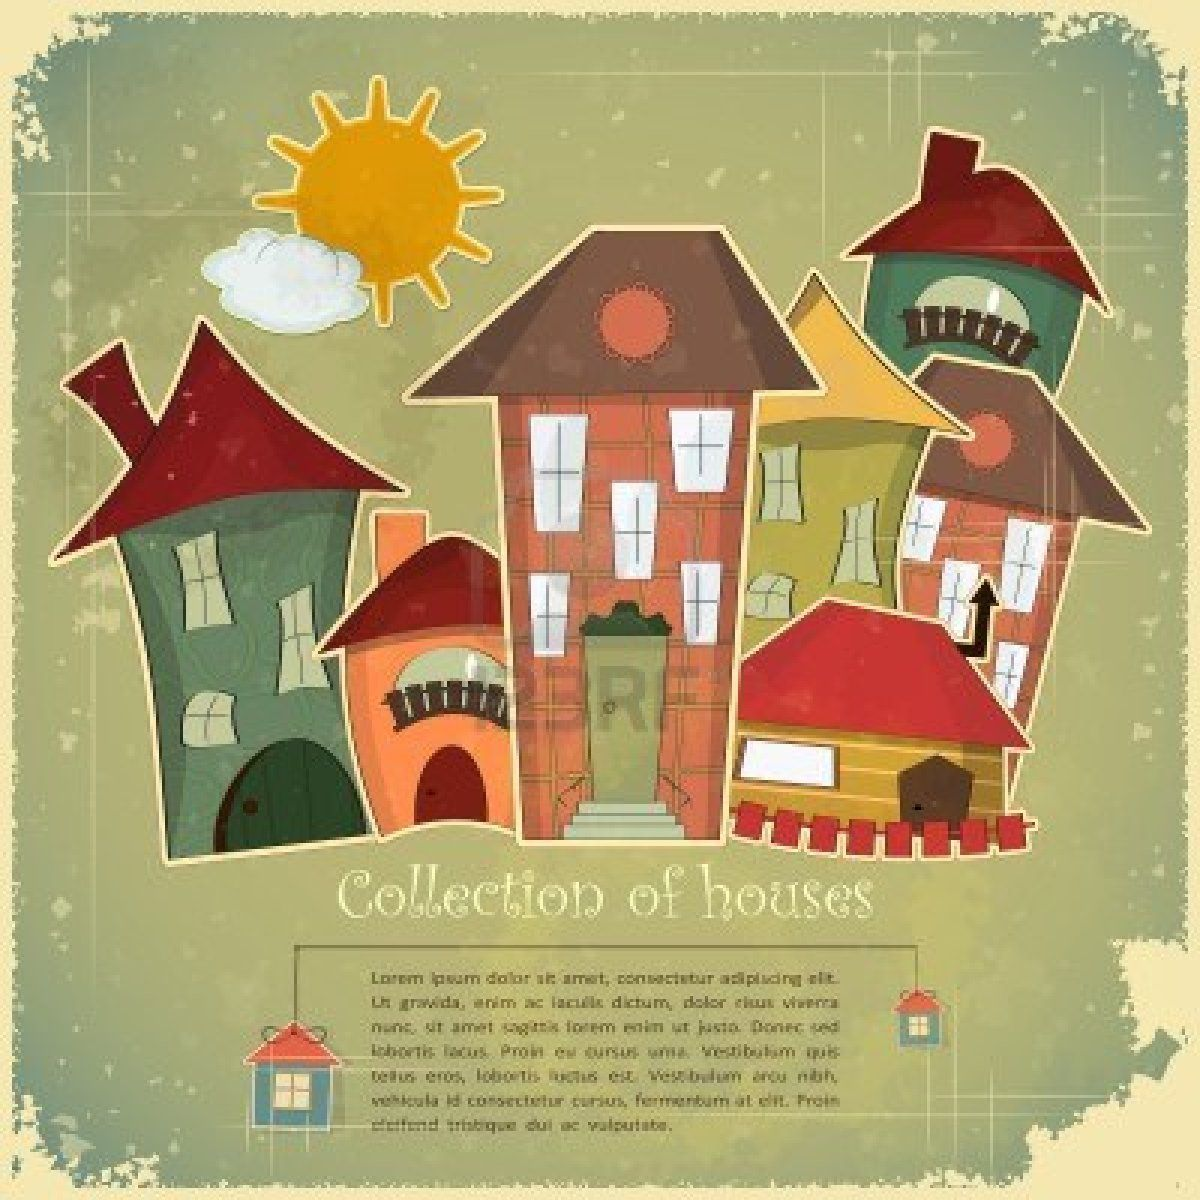 Collection of houses on vintage background - Retro card - vector illustration Stock Photo